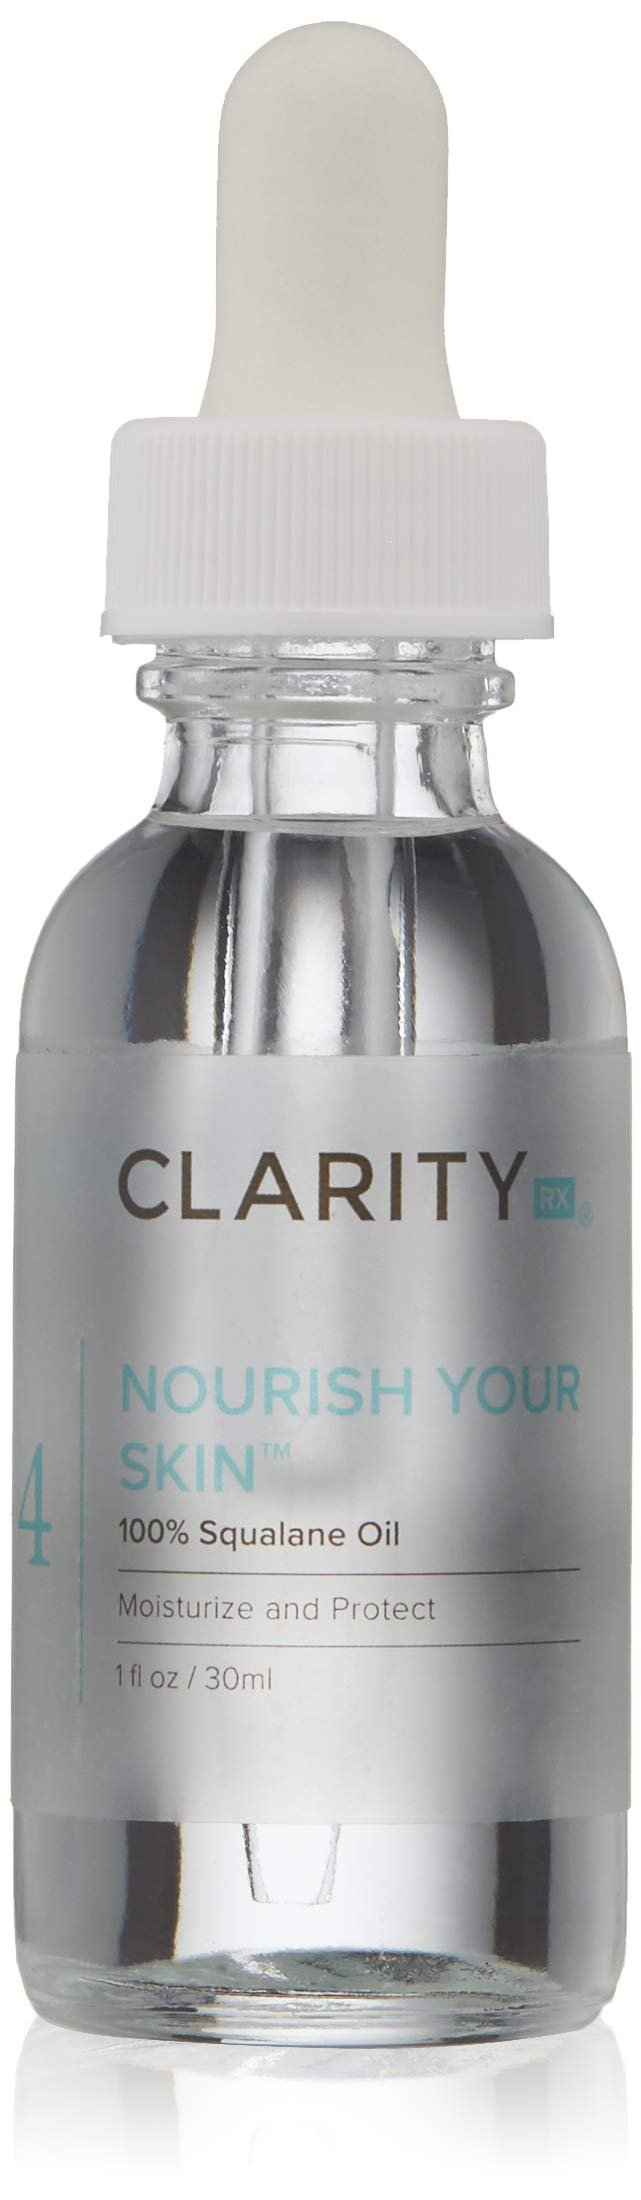 ClarityRx Nourish Your Skin 100% Squalane Additive Oil, 1 Fl Oz (packaging may vary)